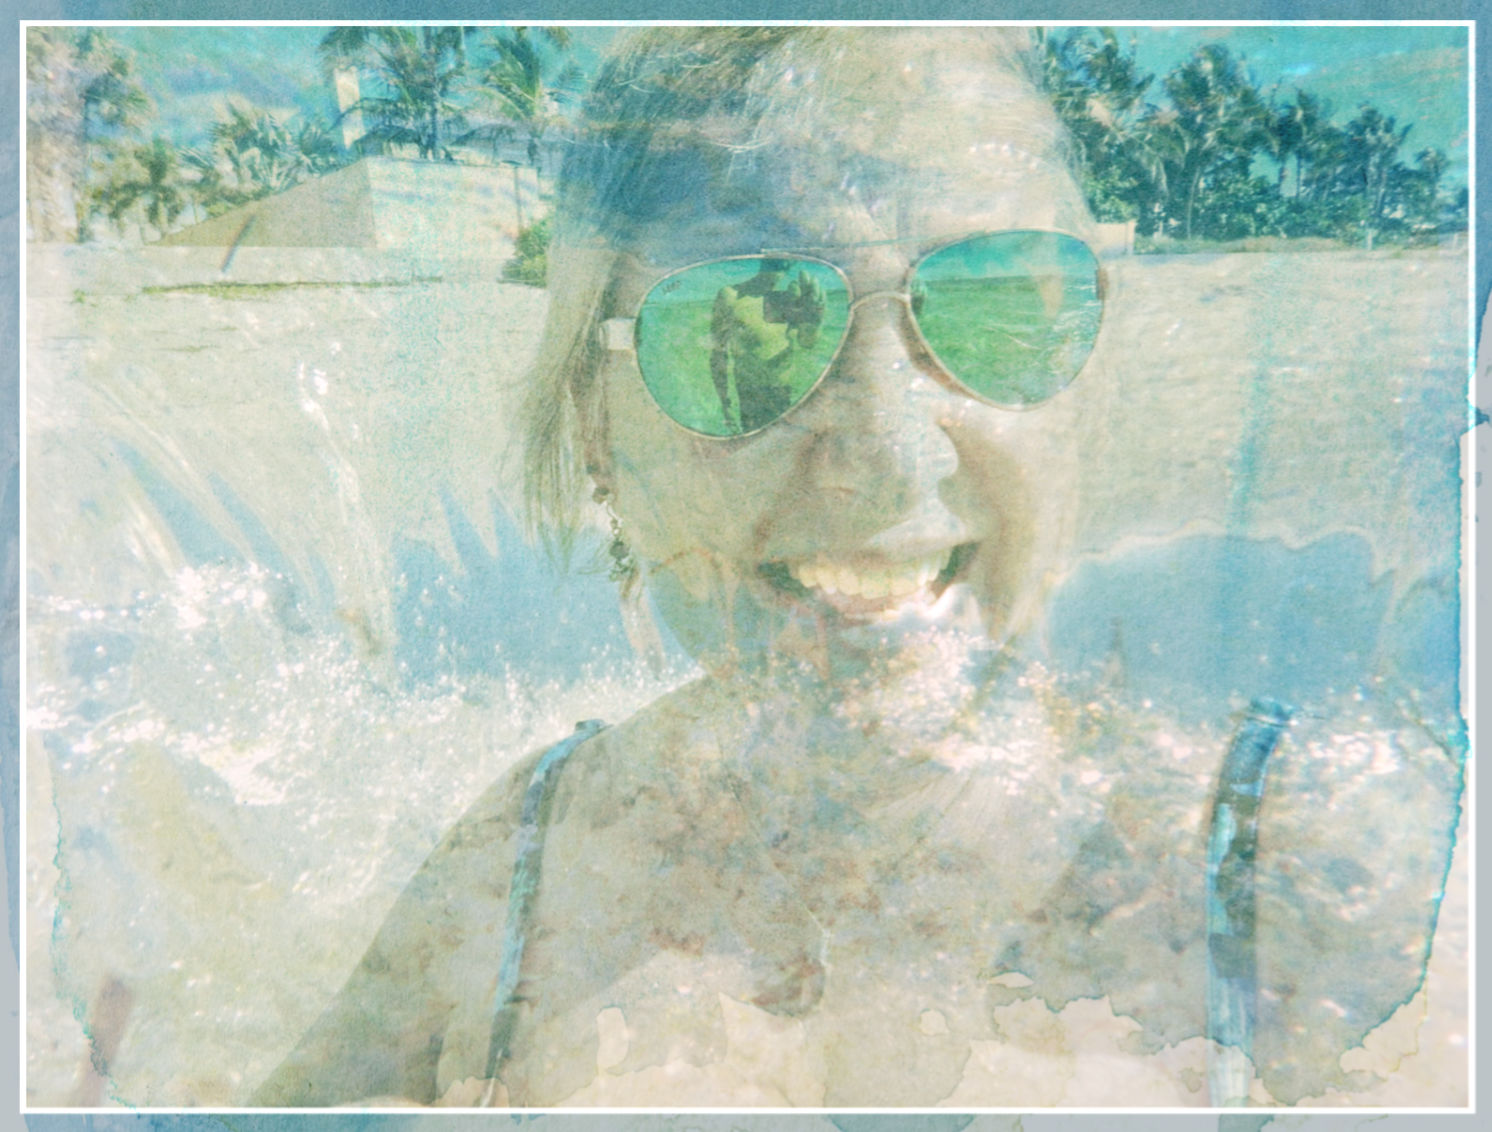 A double exposure from Boca Grande, photos by Steve